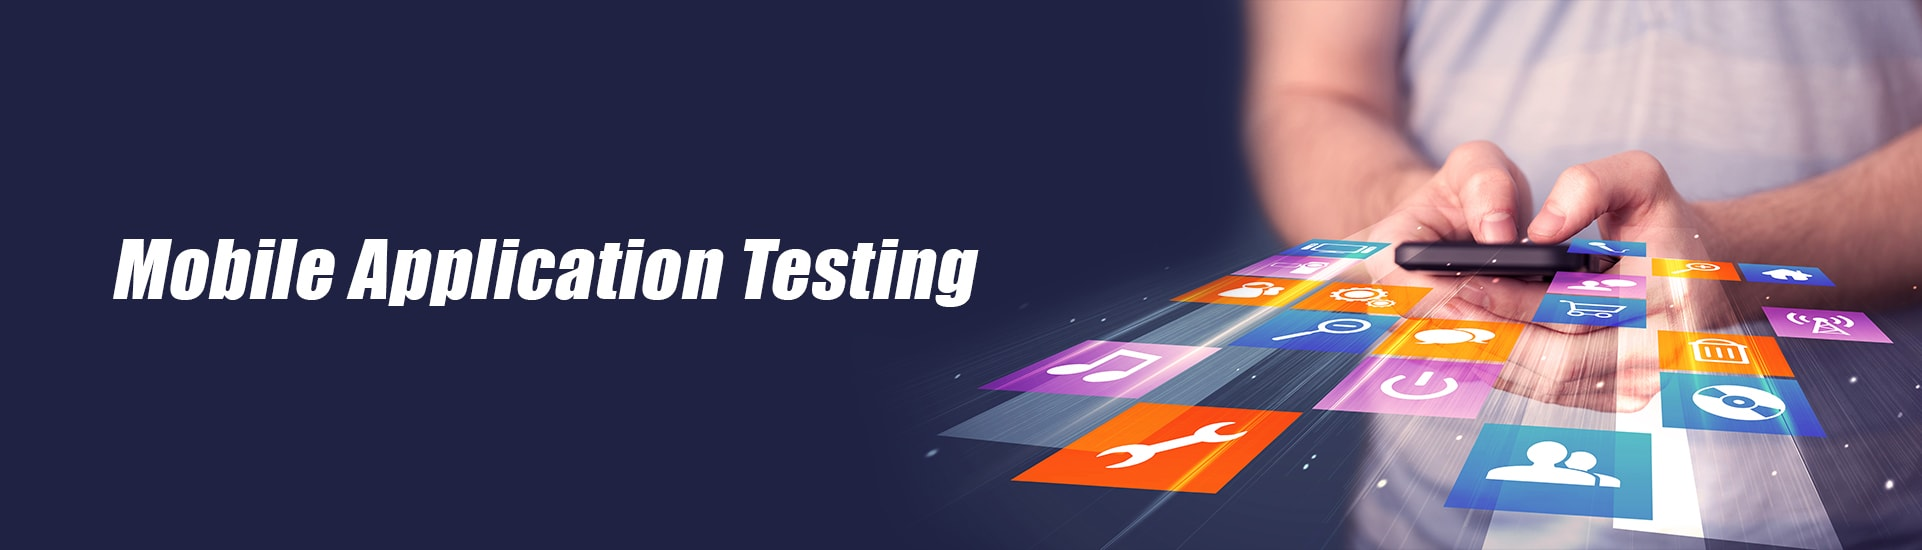 Mobile Application Testing Company in India and USA